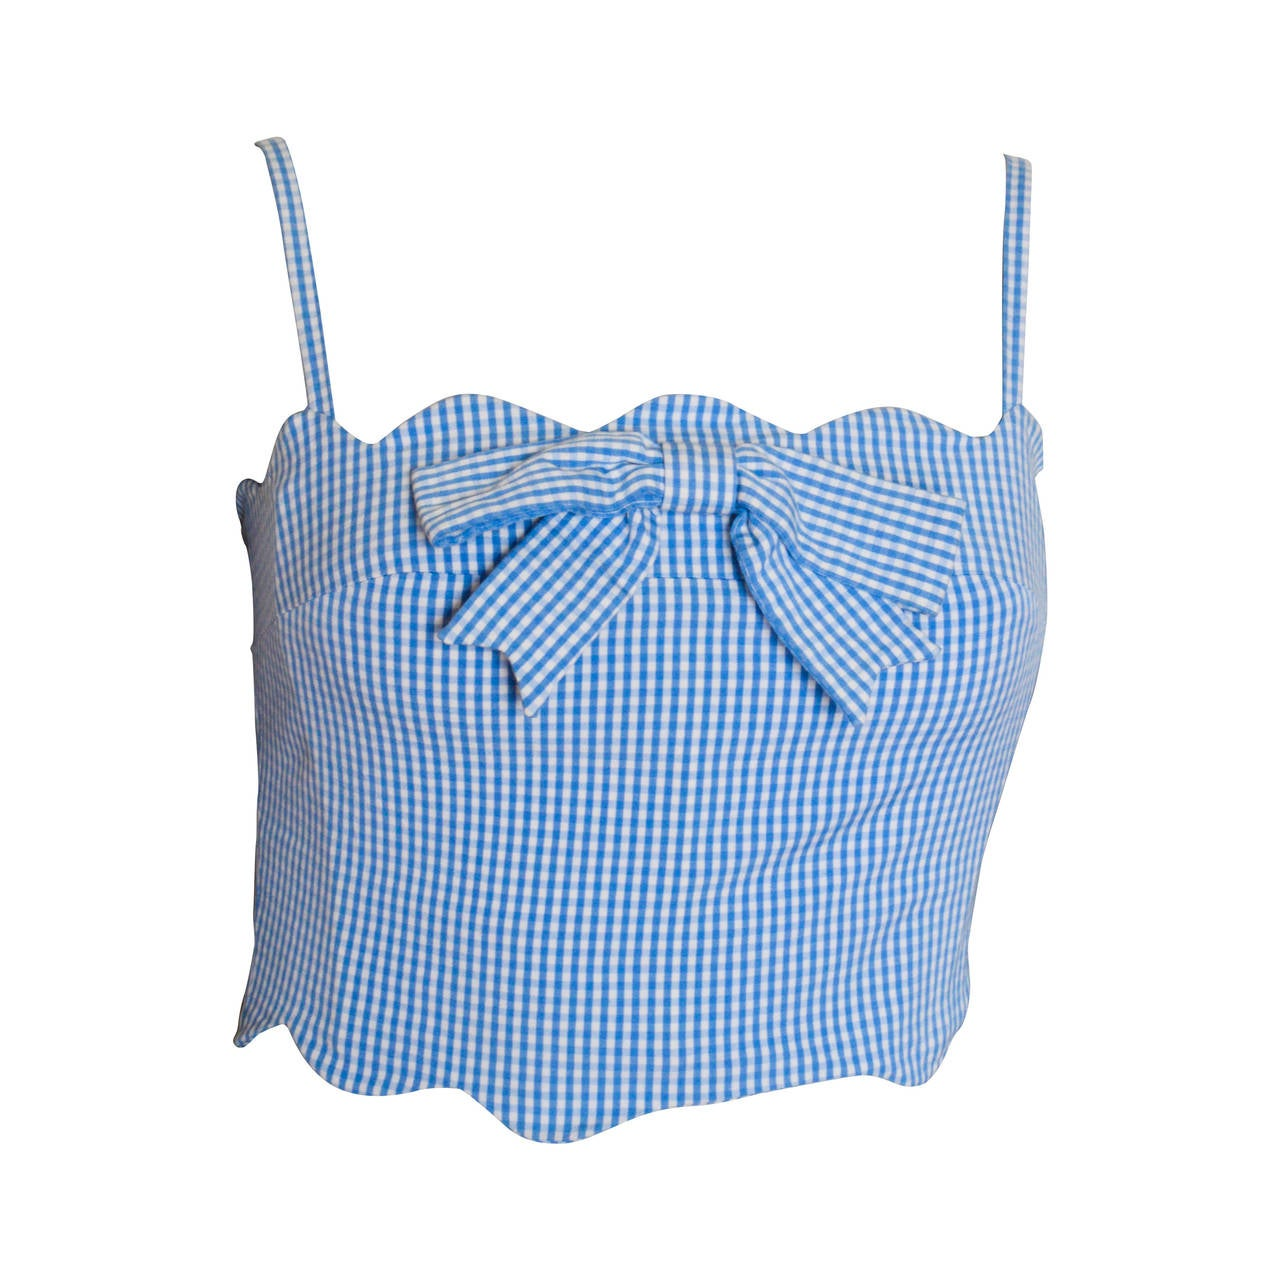 Moschino Cheap & Chic Gingham Bustier Top 1